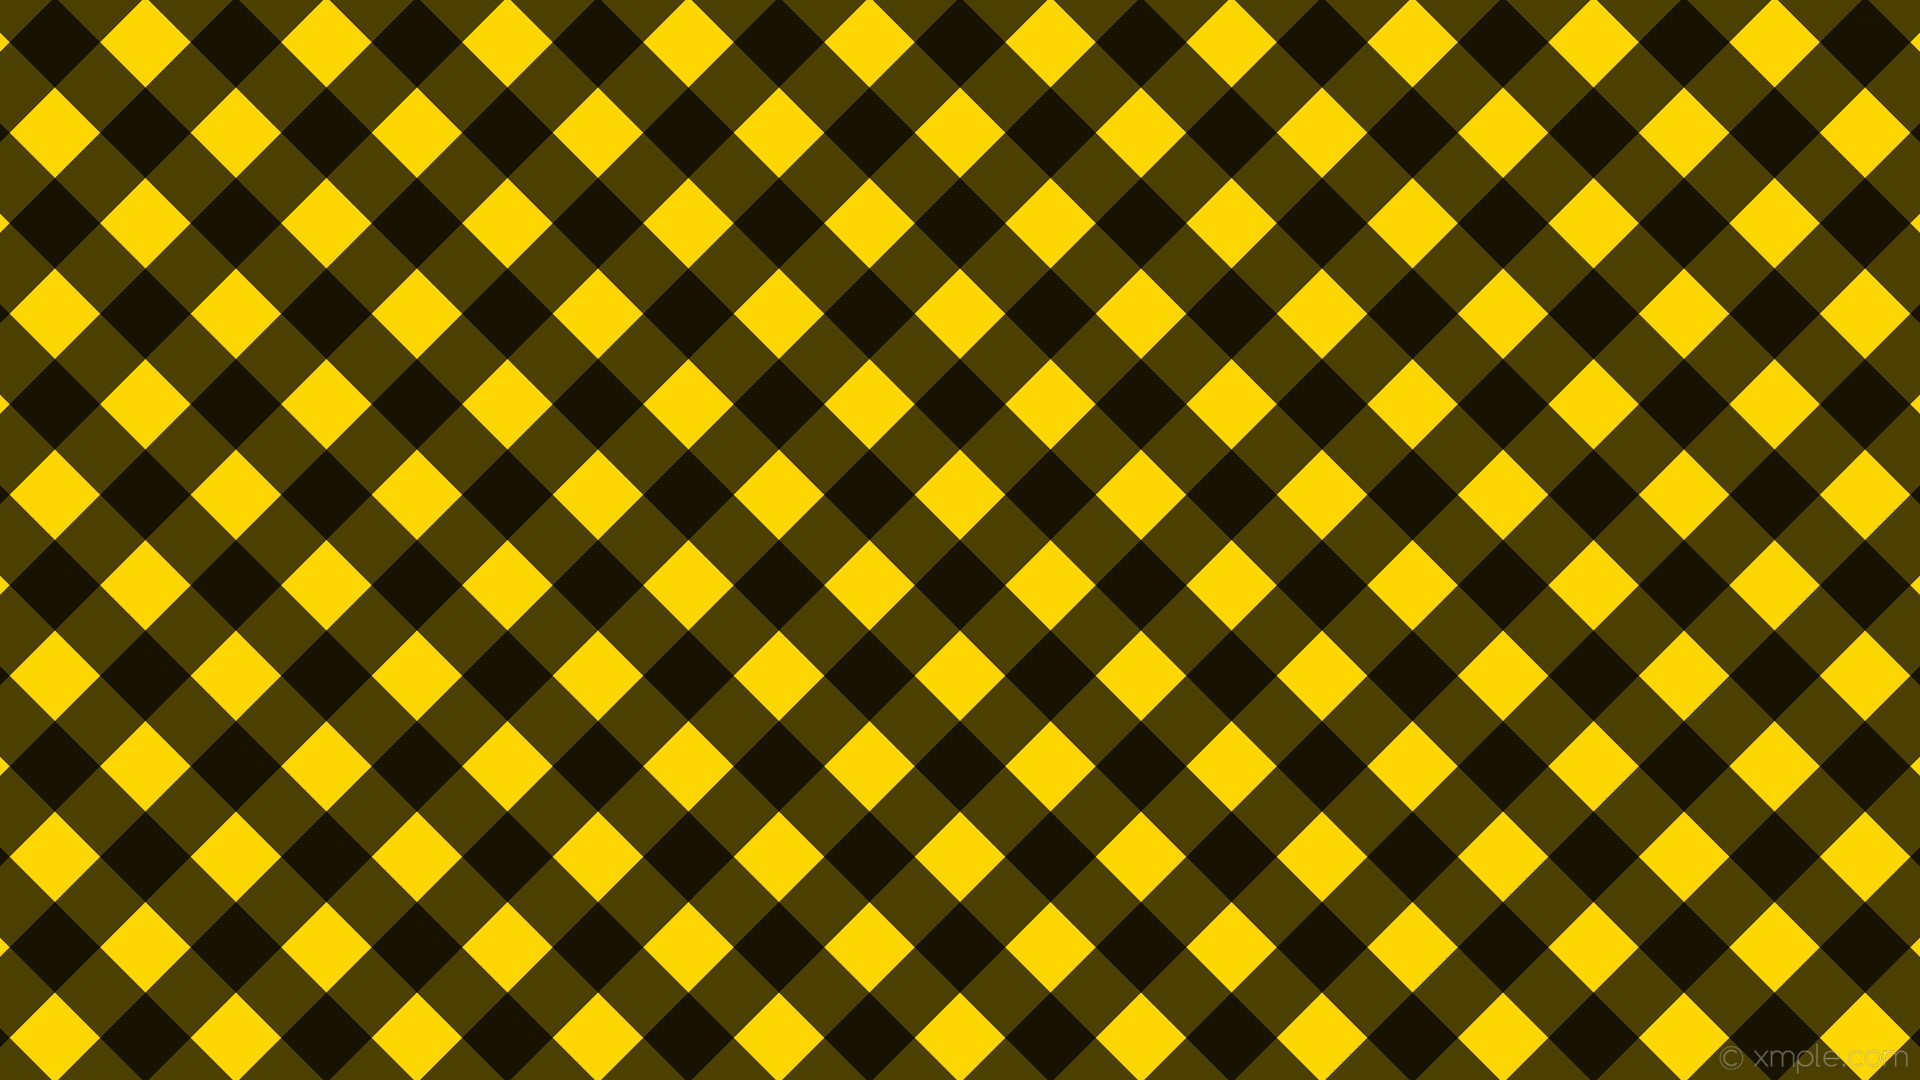 1920x1080 wallpaper gingham striped checker black yellow gold #ffd700 #000000 315°  64px